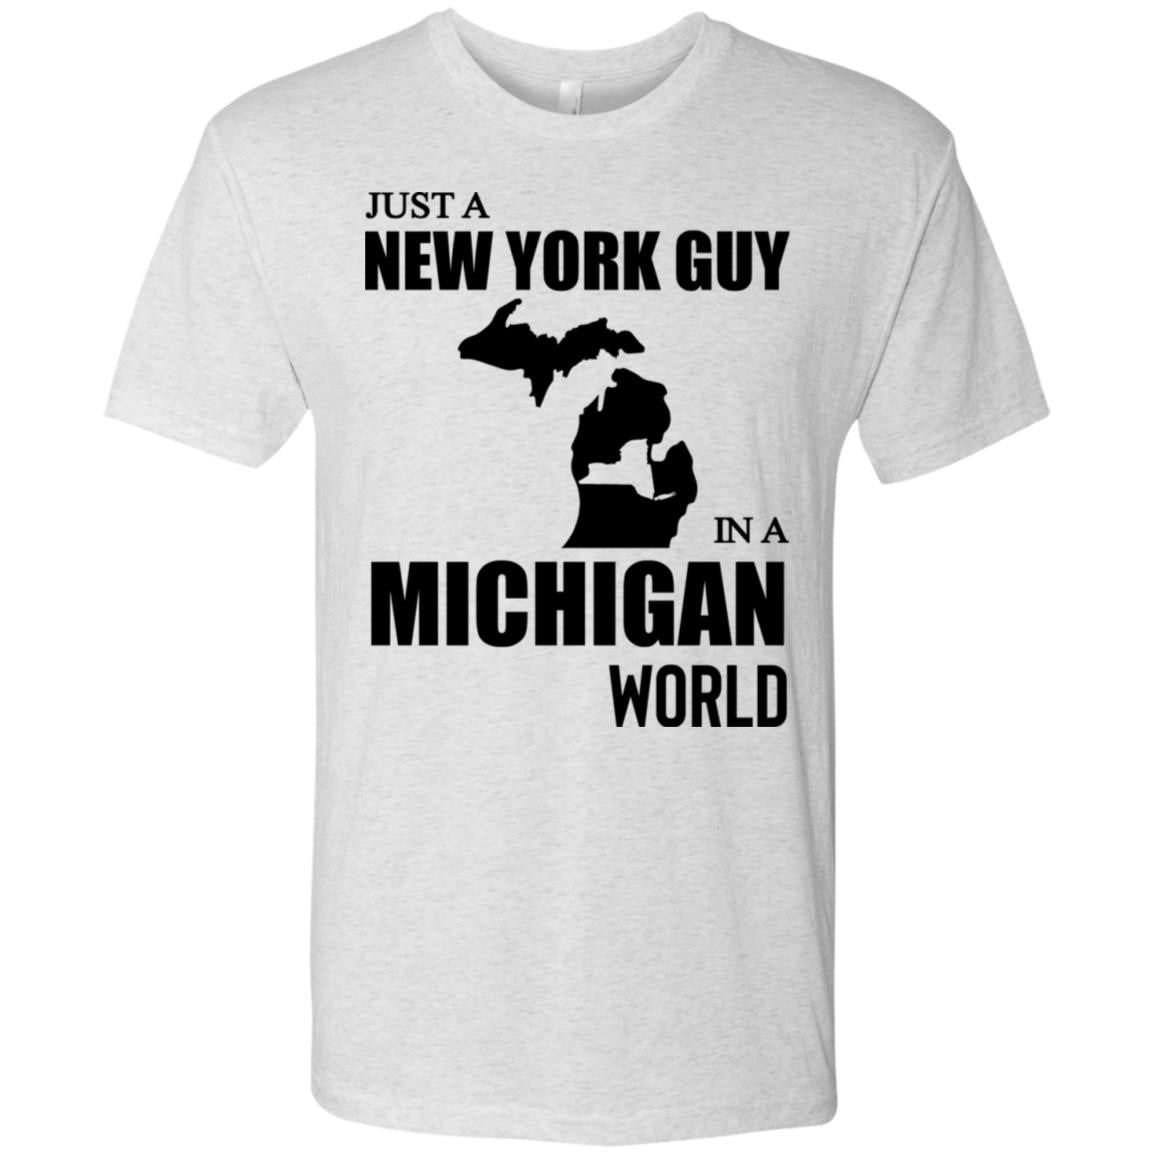 Just A New York Guy In A Michigan World T-Shirt